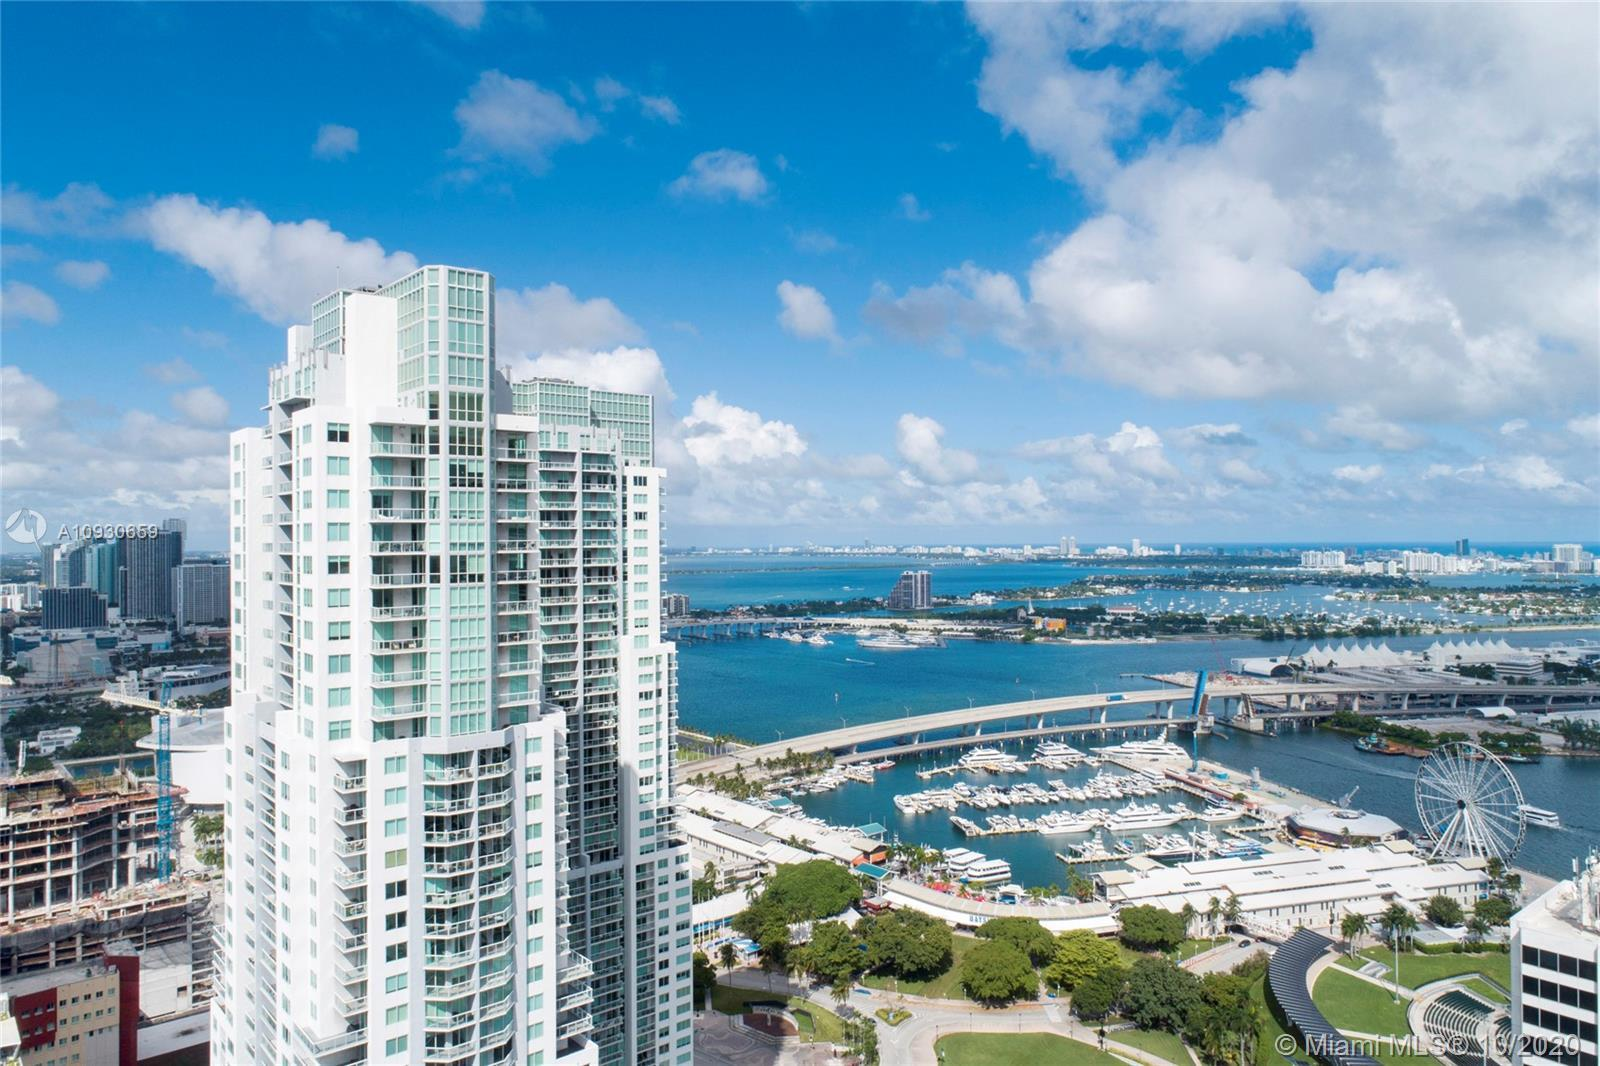 One-of-a-kind home in the Sky! Huge 2,500+ SF combined unit with 180-degree panoramic water and city